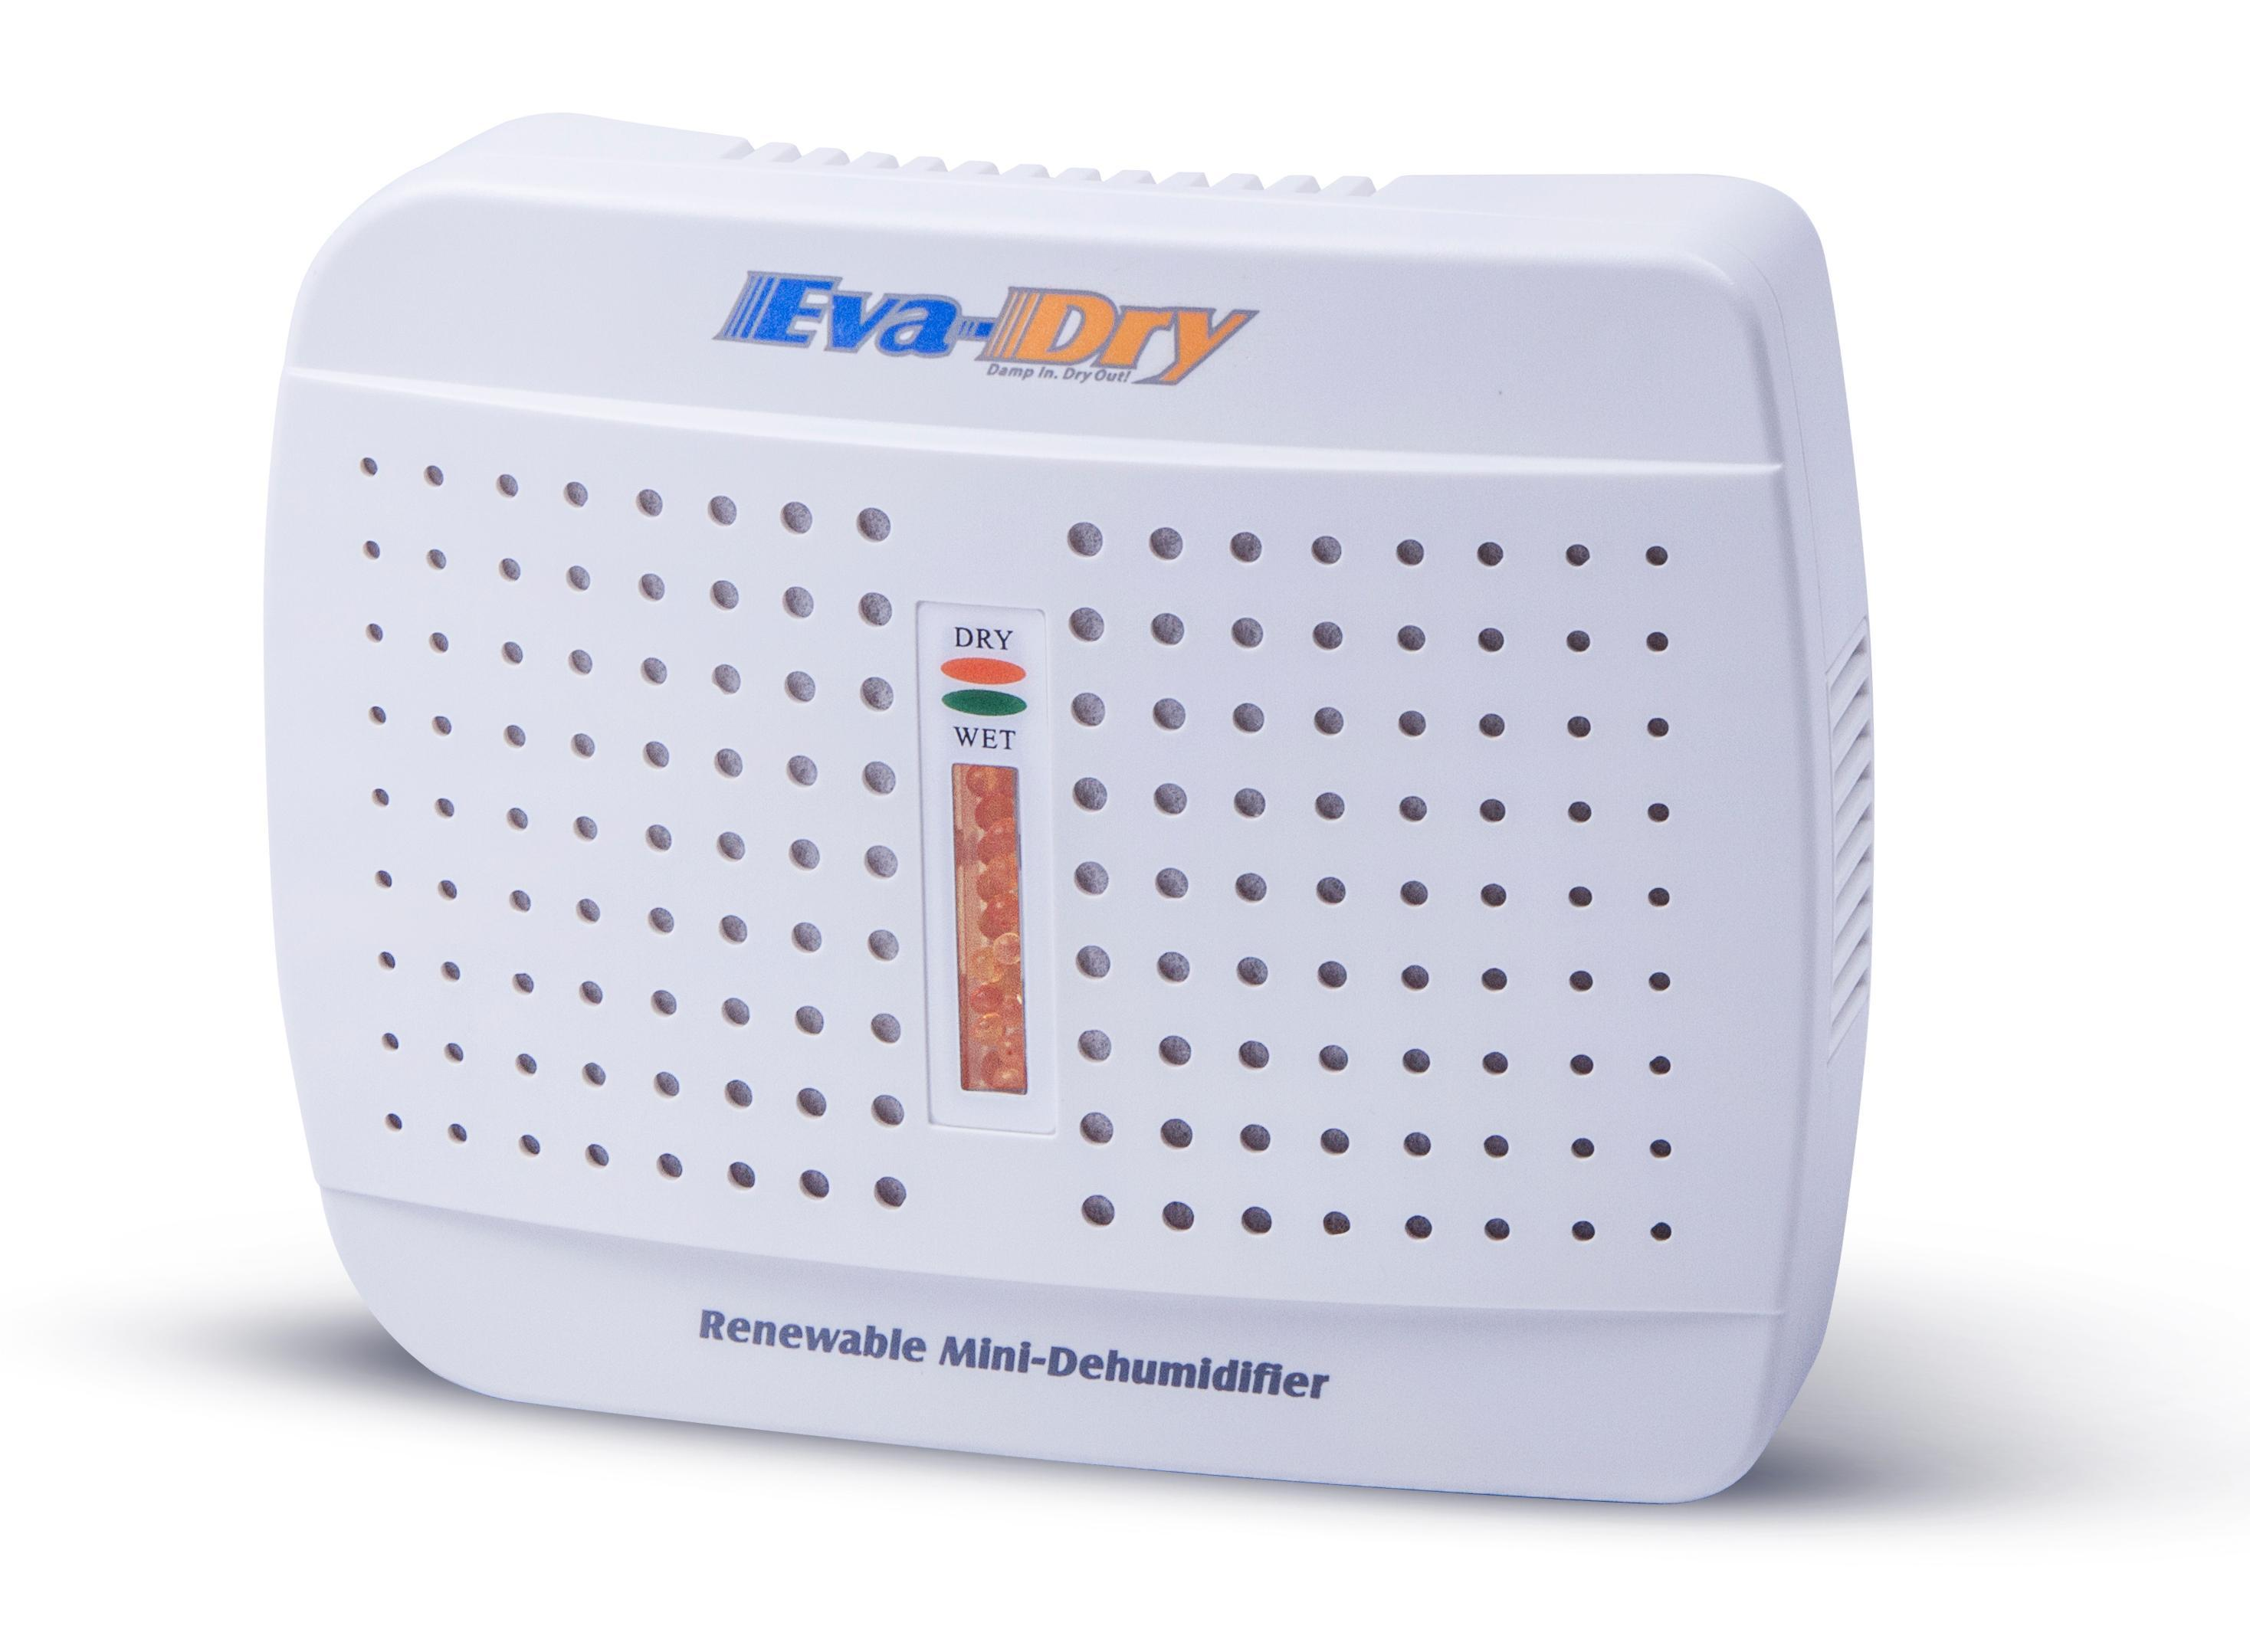 eva dry e 333 review